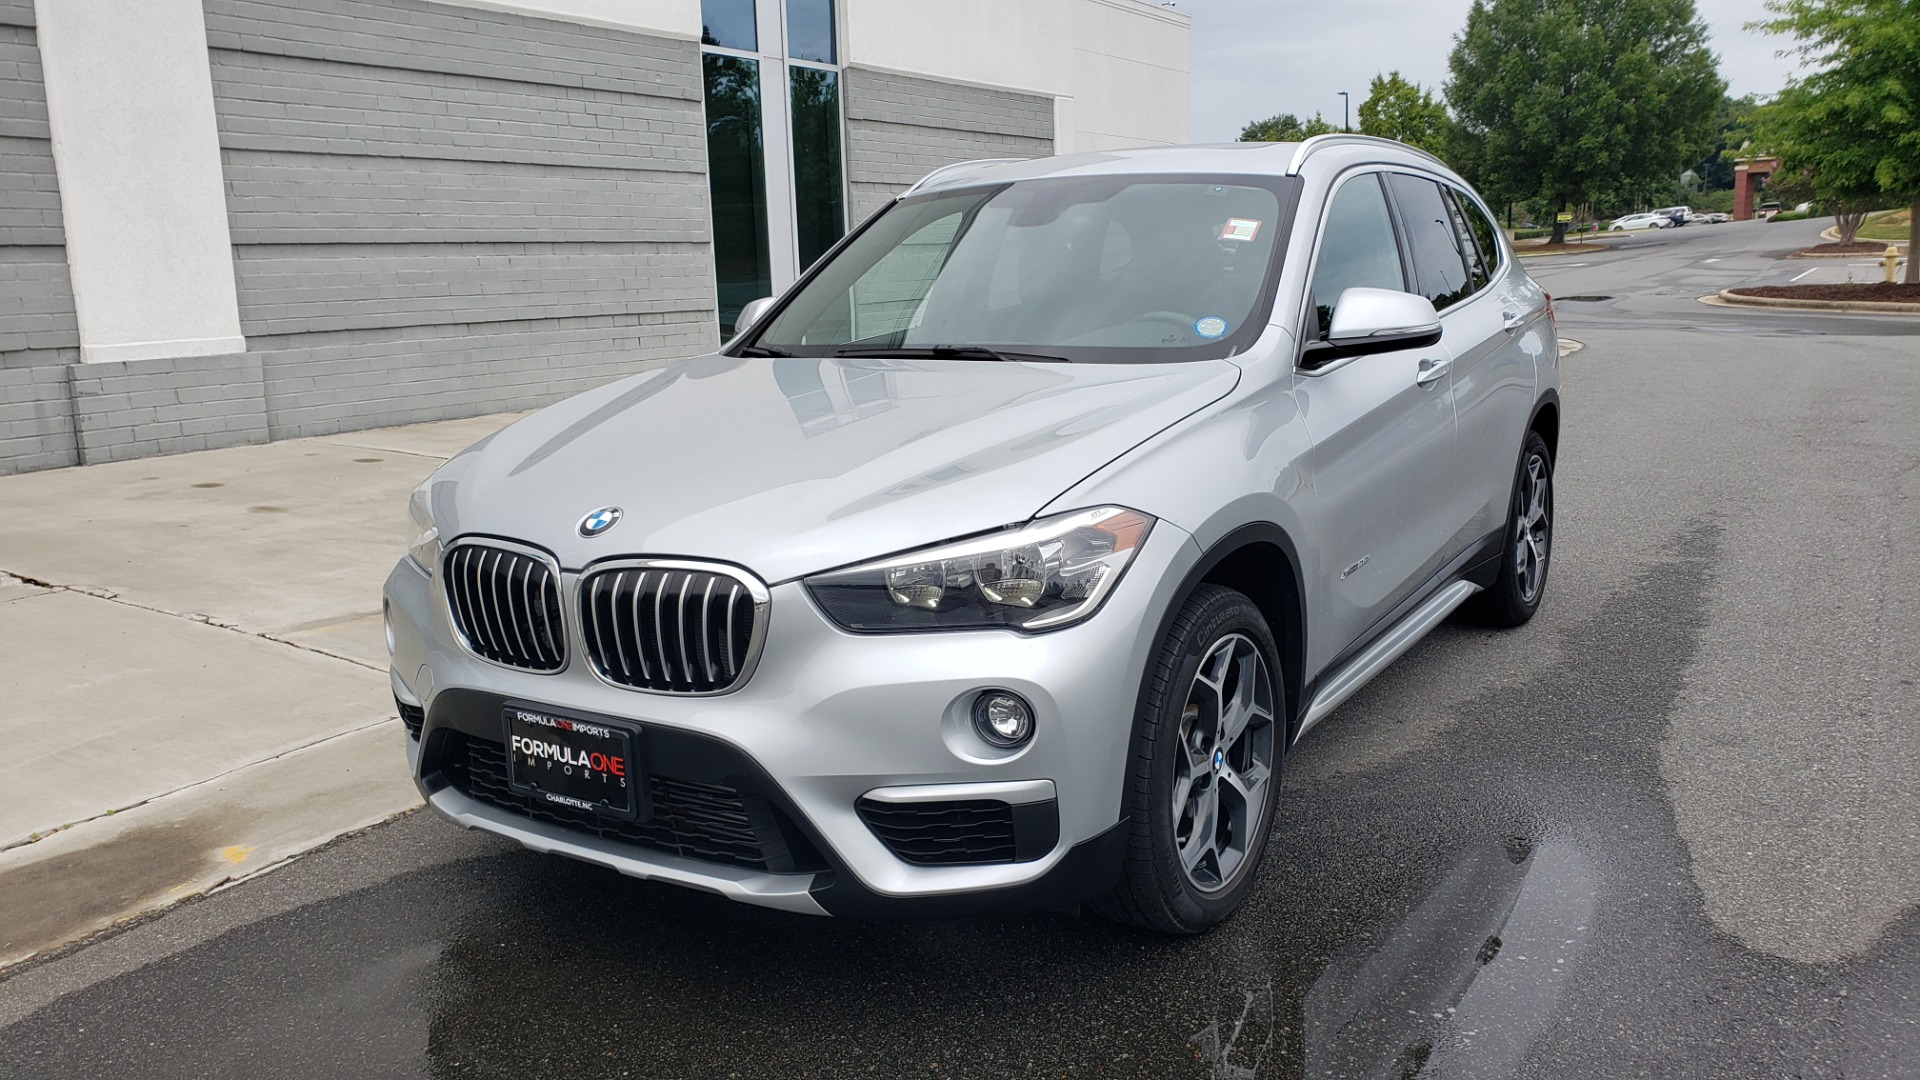 Used 2018 BMW X1 XDRIVE38I / NAV / CONV PKG / PANO-ROOF / HTD STS / REARVIEW for sale $28,995 at Formula Imports in Charlotte NC 28227 3